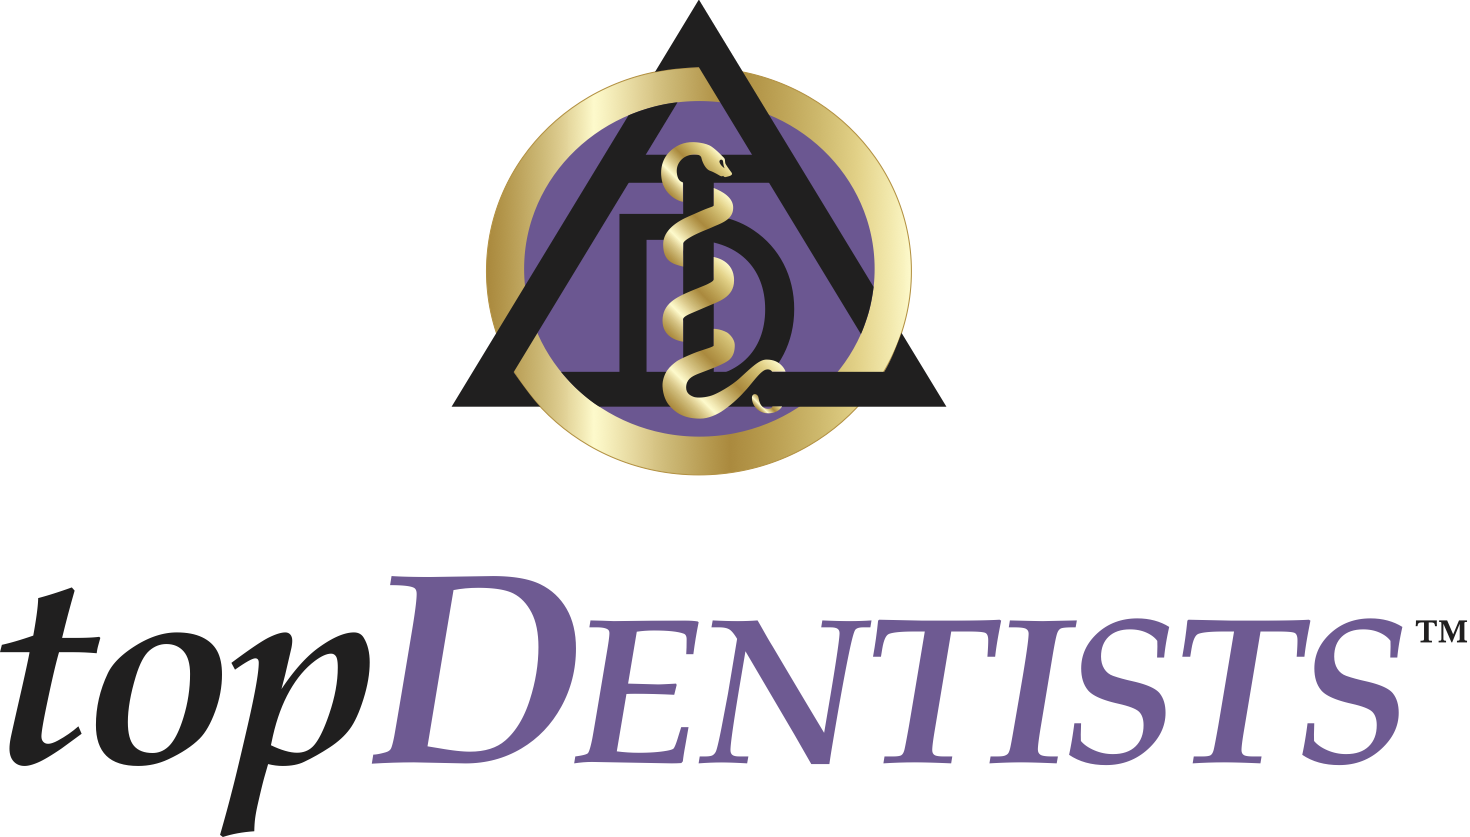 Top Dentists award logo dentistry symbol in purple gold and black given to best dentists annually by their peers